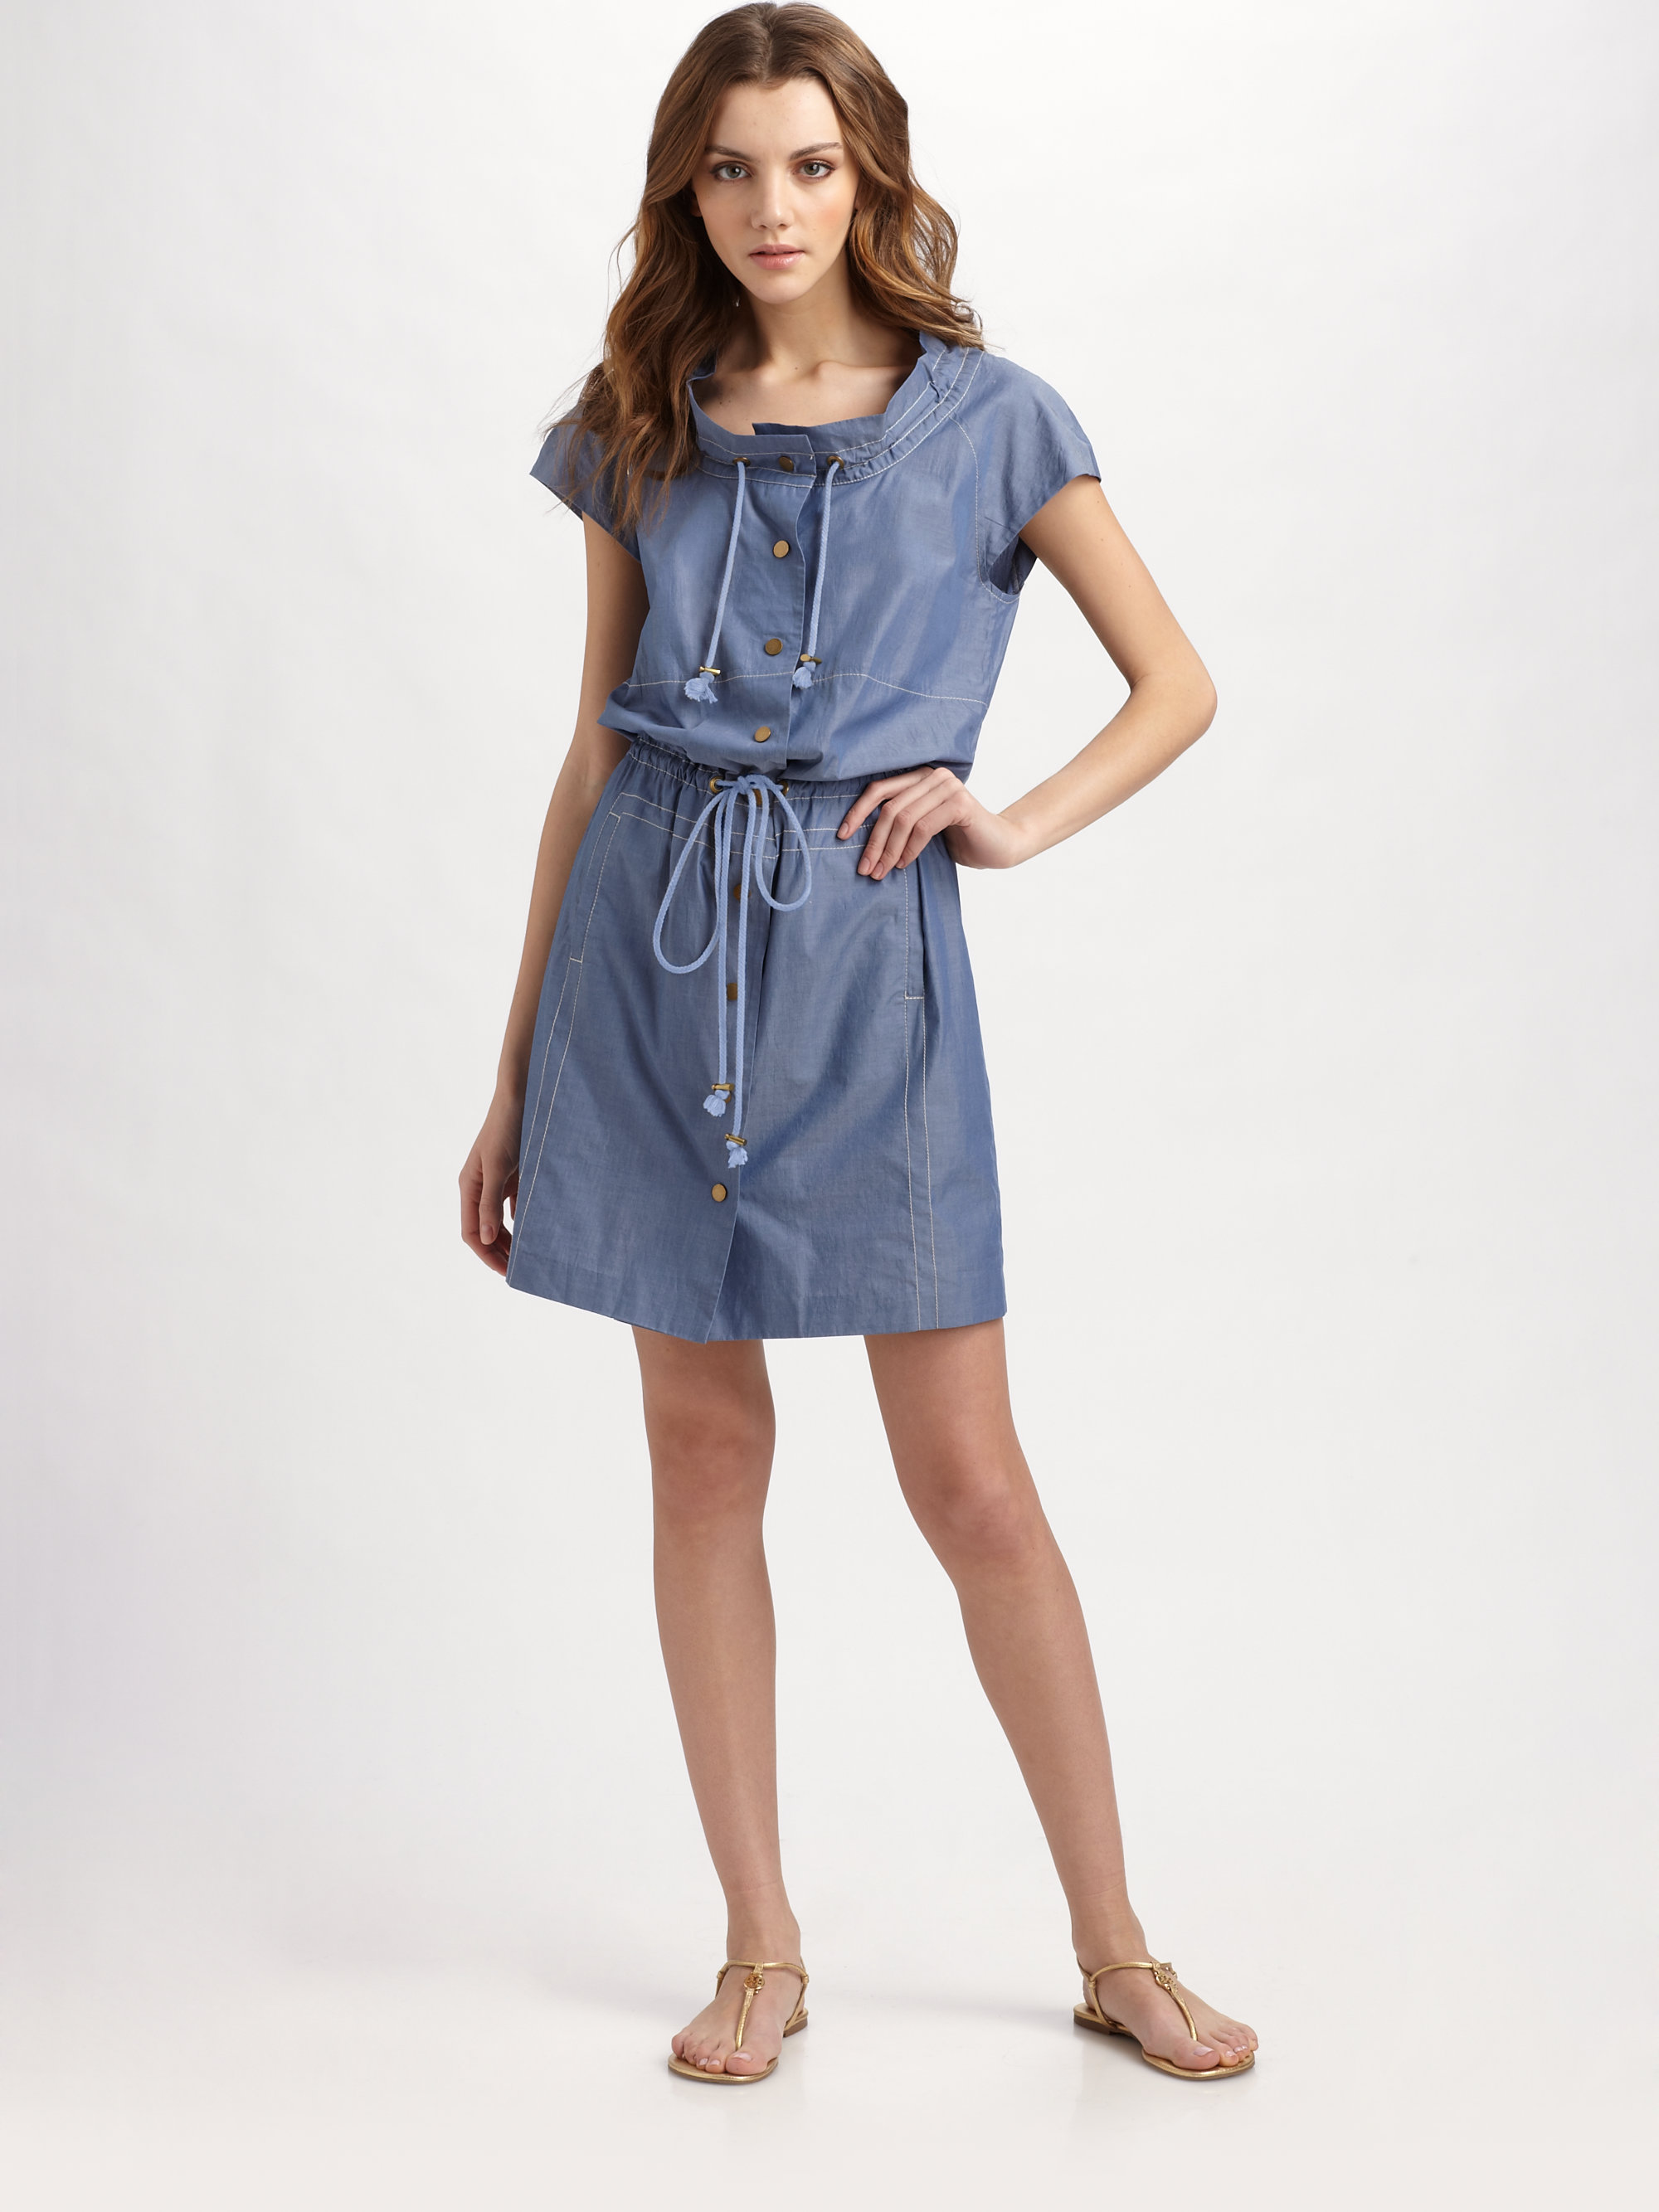 Tory burch pepper summer spring chambray dress in blue lyst for Chambray dress